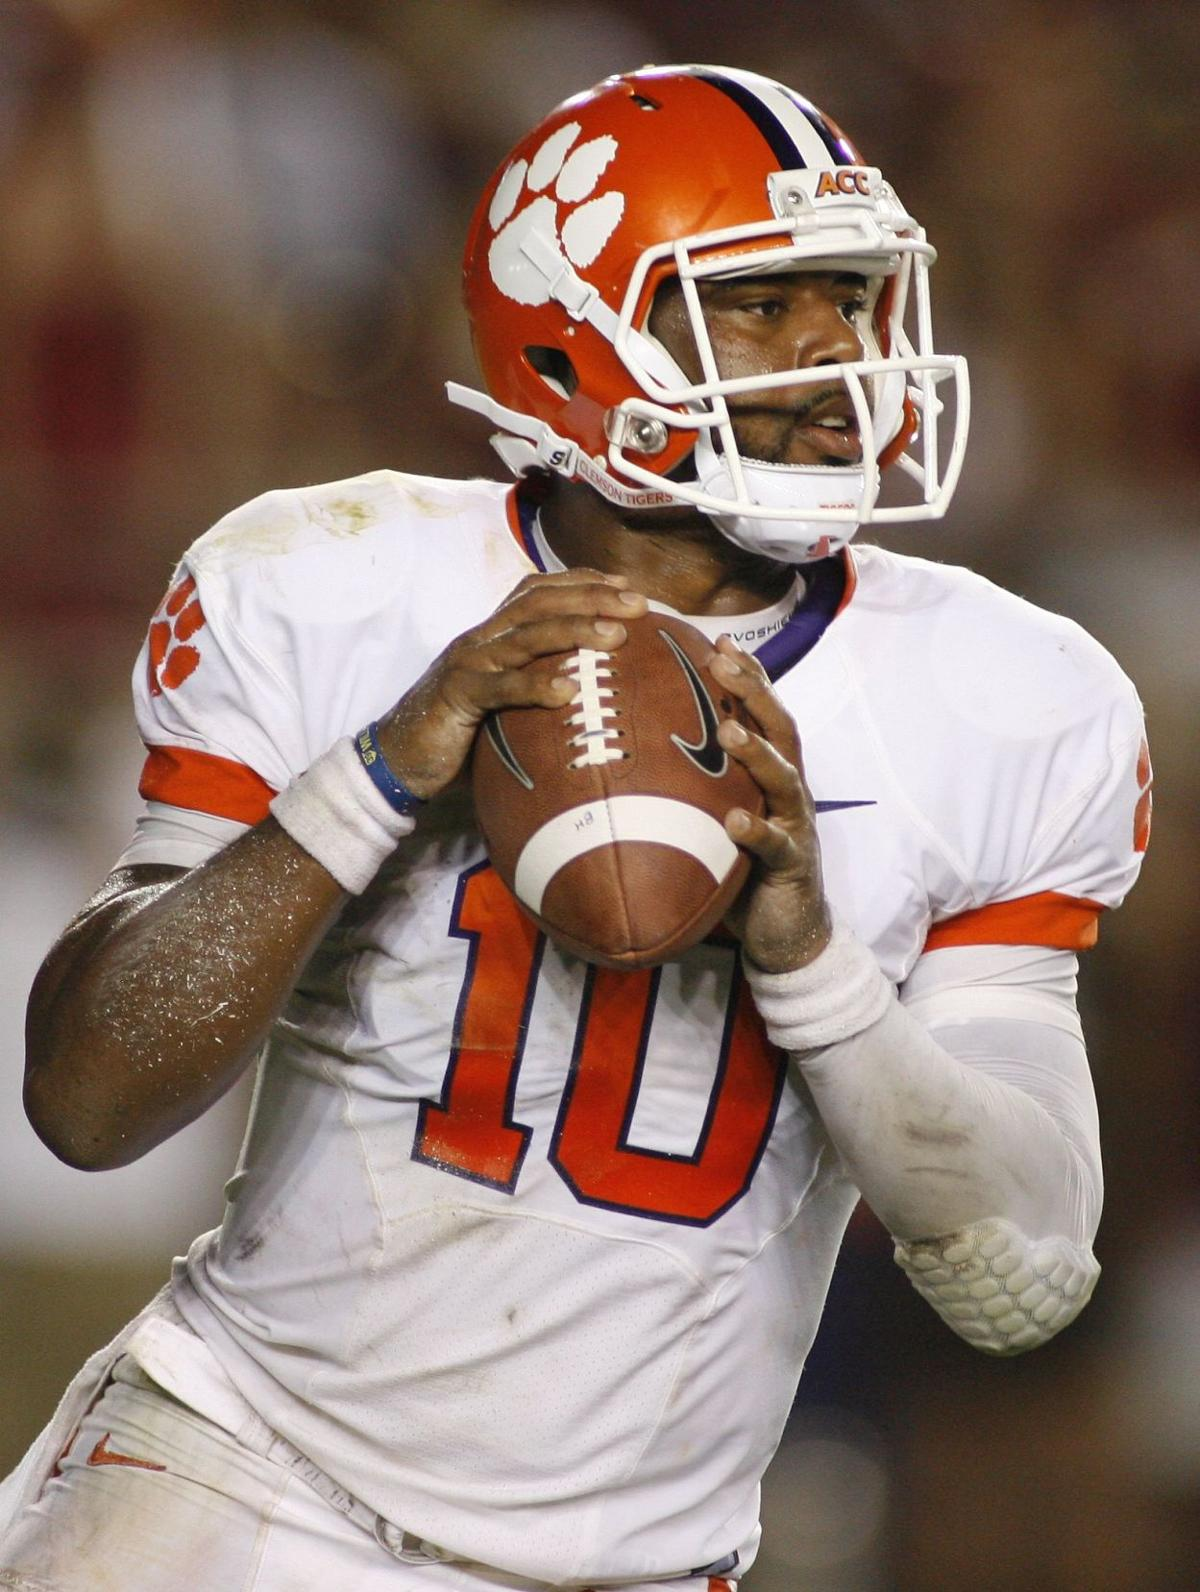 Forget about Texas A&M's Johnny Manziel, Clemson's Tajh Boyd says he's the best quarterback in college football